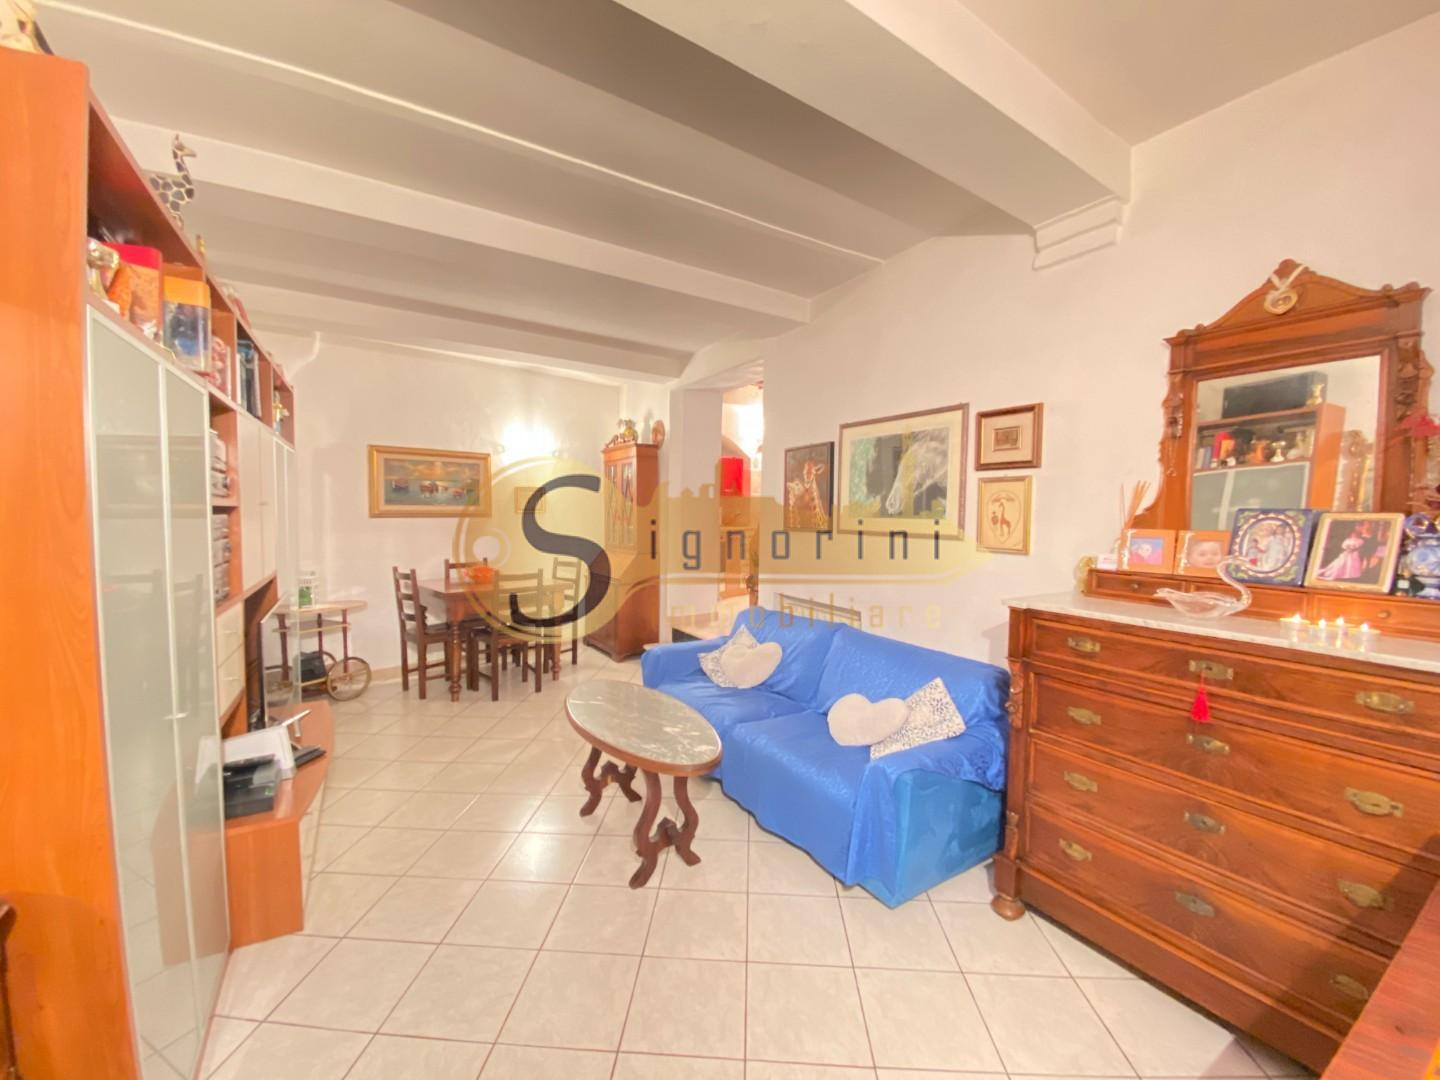 Apartment for sale in Siena